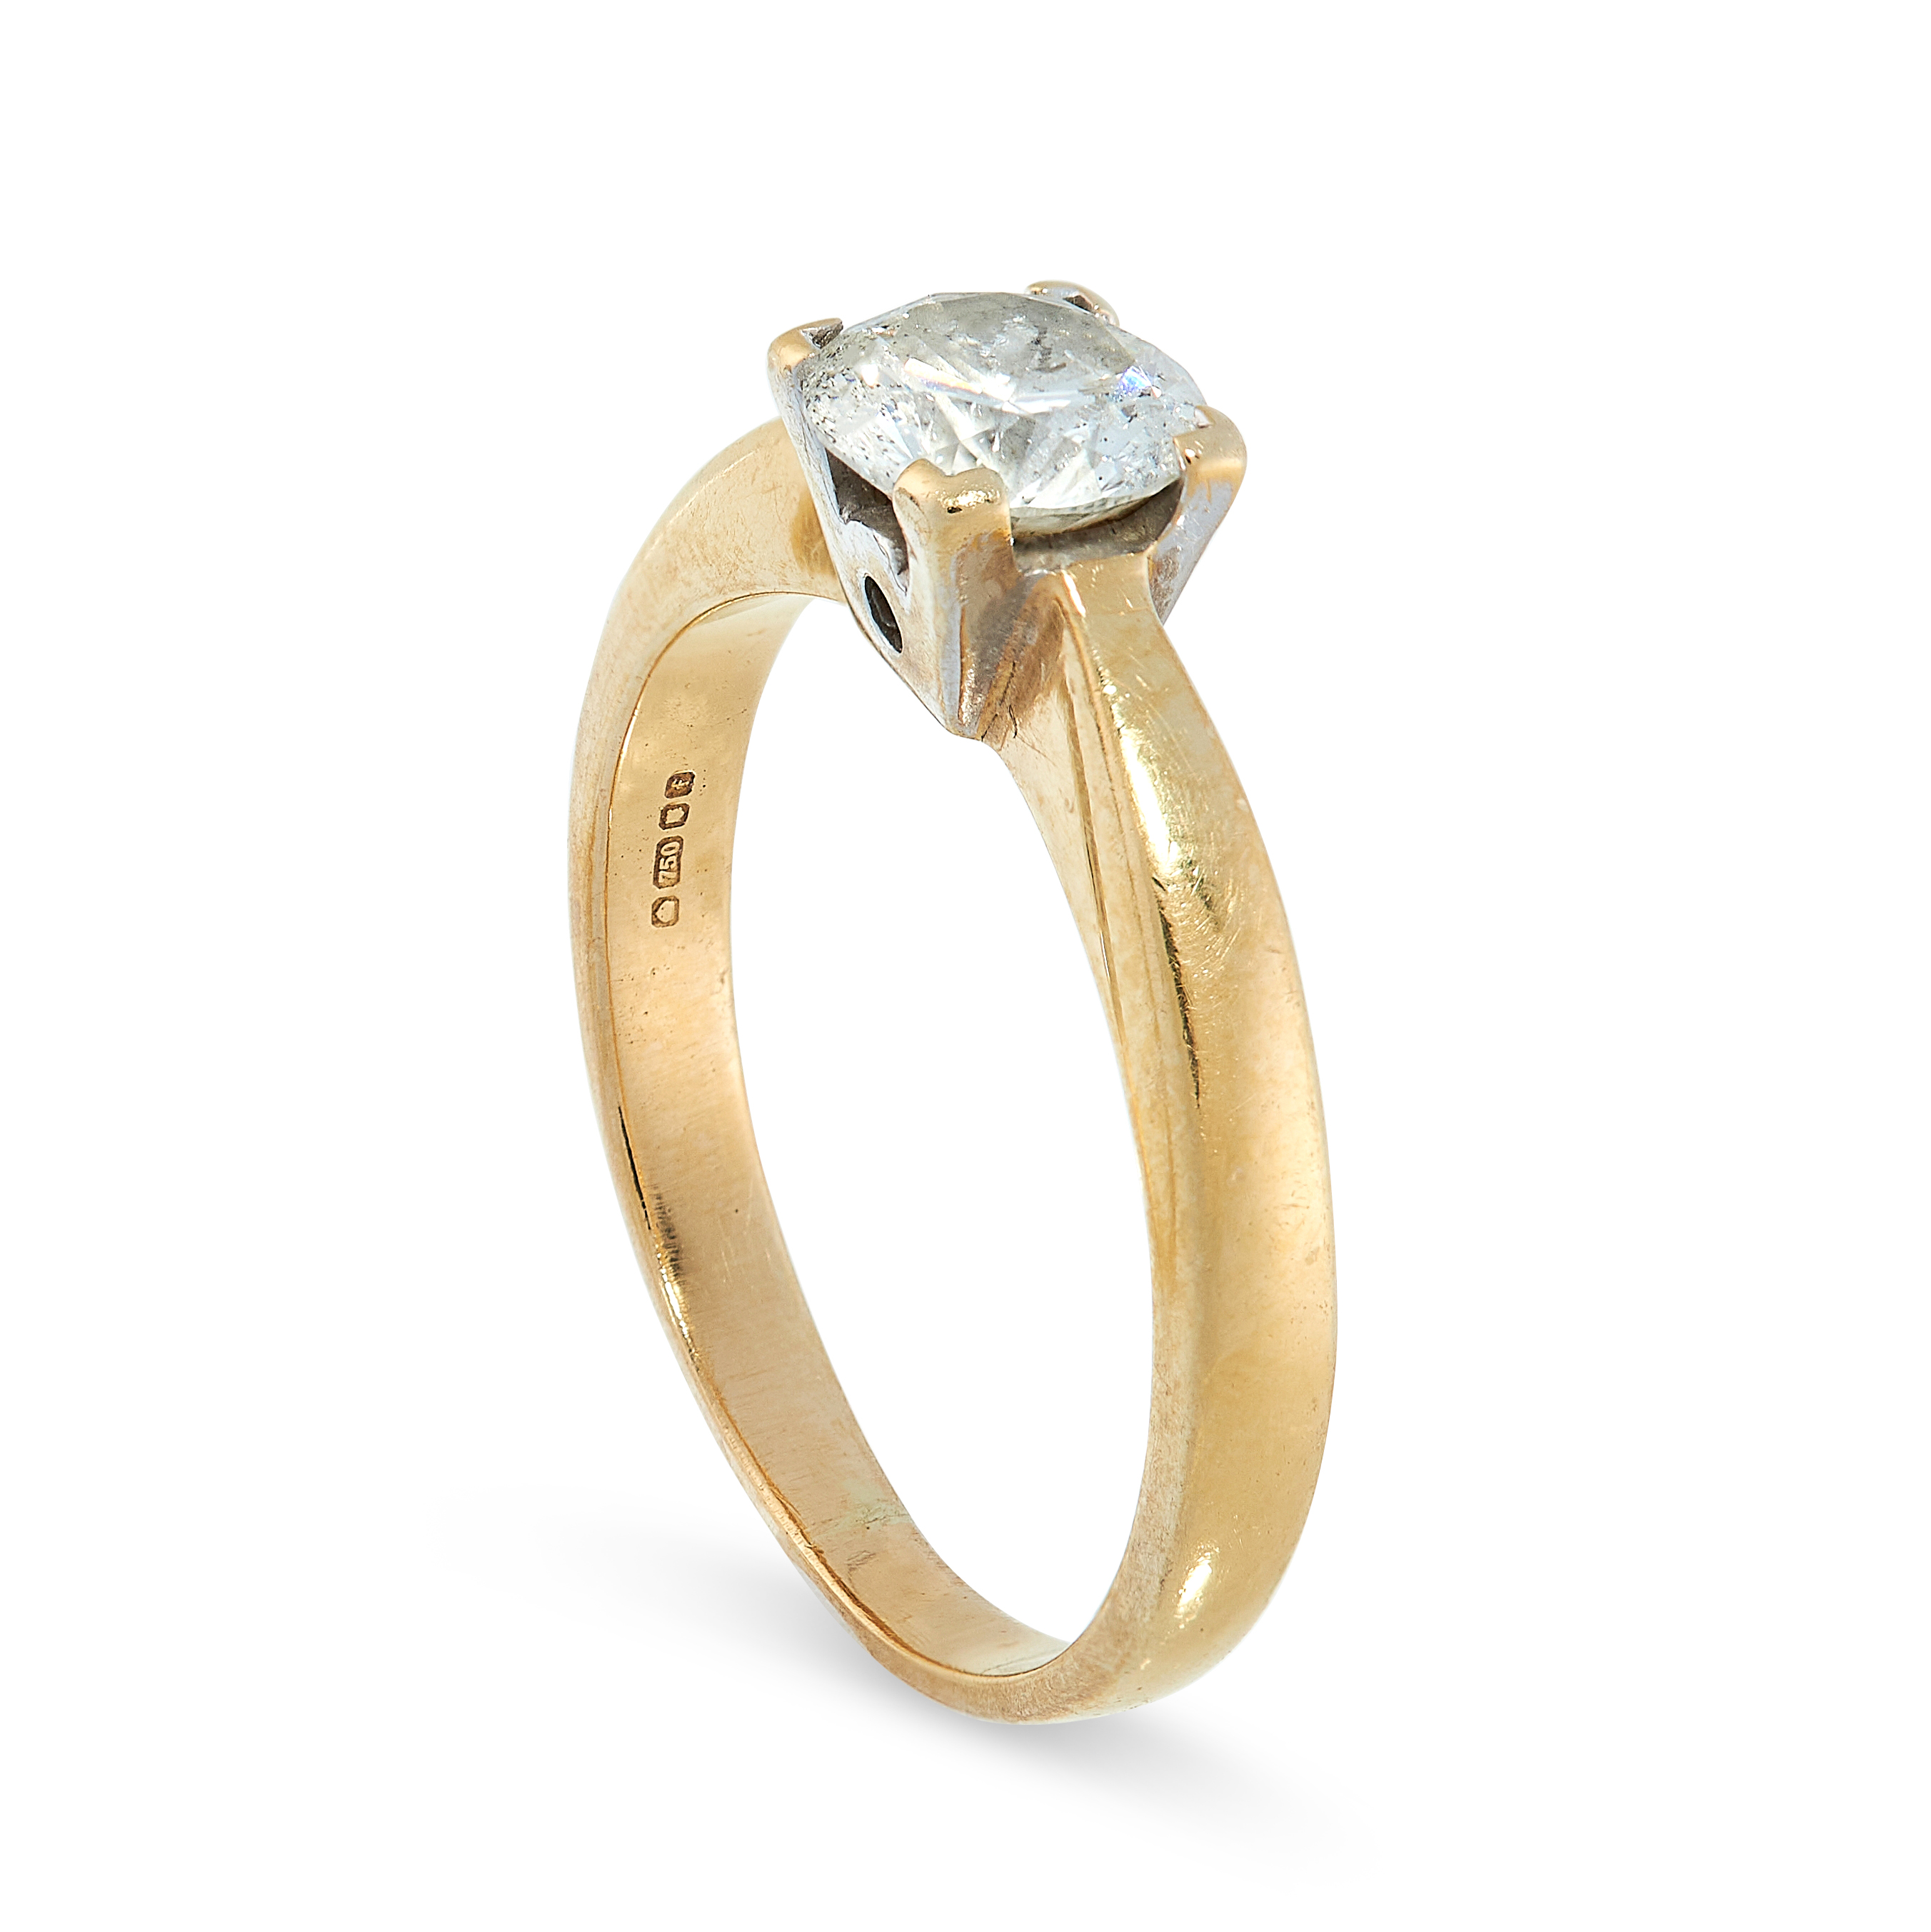 DIAMOND SOLITAIRE RING in 18ct yellow gold, set with a round cut diamond of 0.85 carats, British - Image 2 of 2